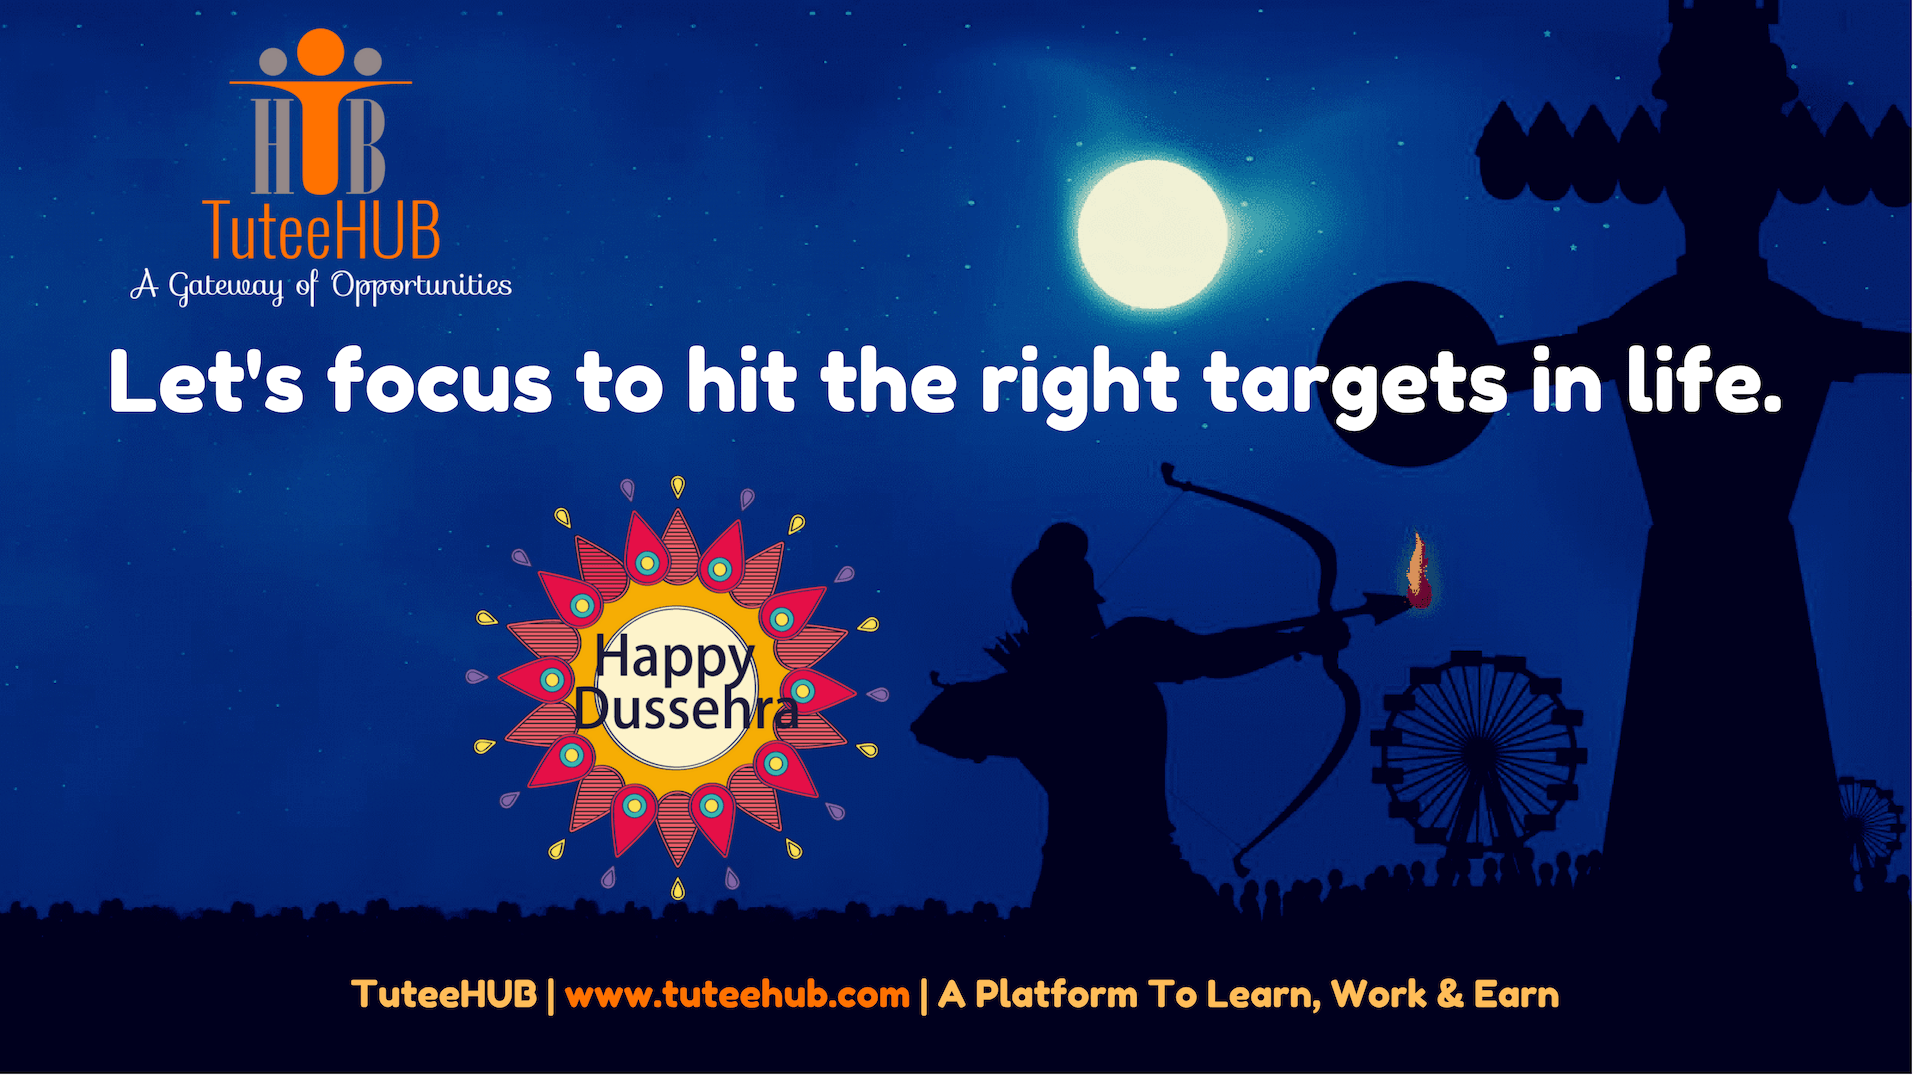 Connected Focus,Hits Targets - Create Success With TuteeHUB This Dussehra!